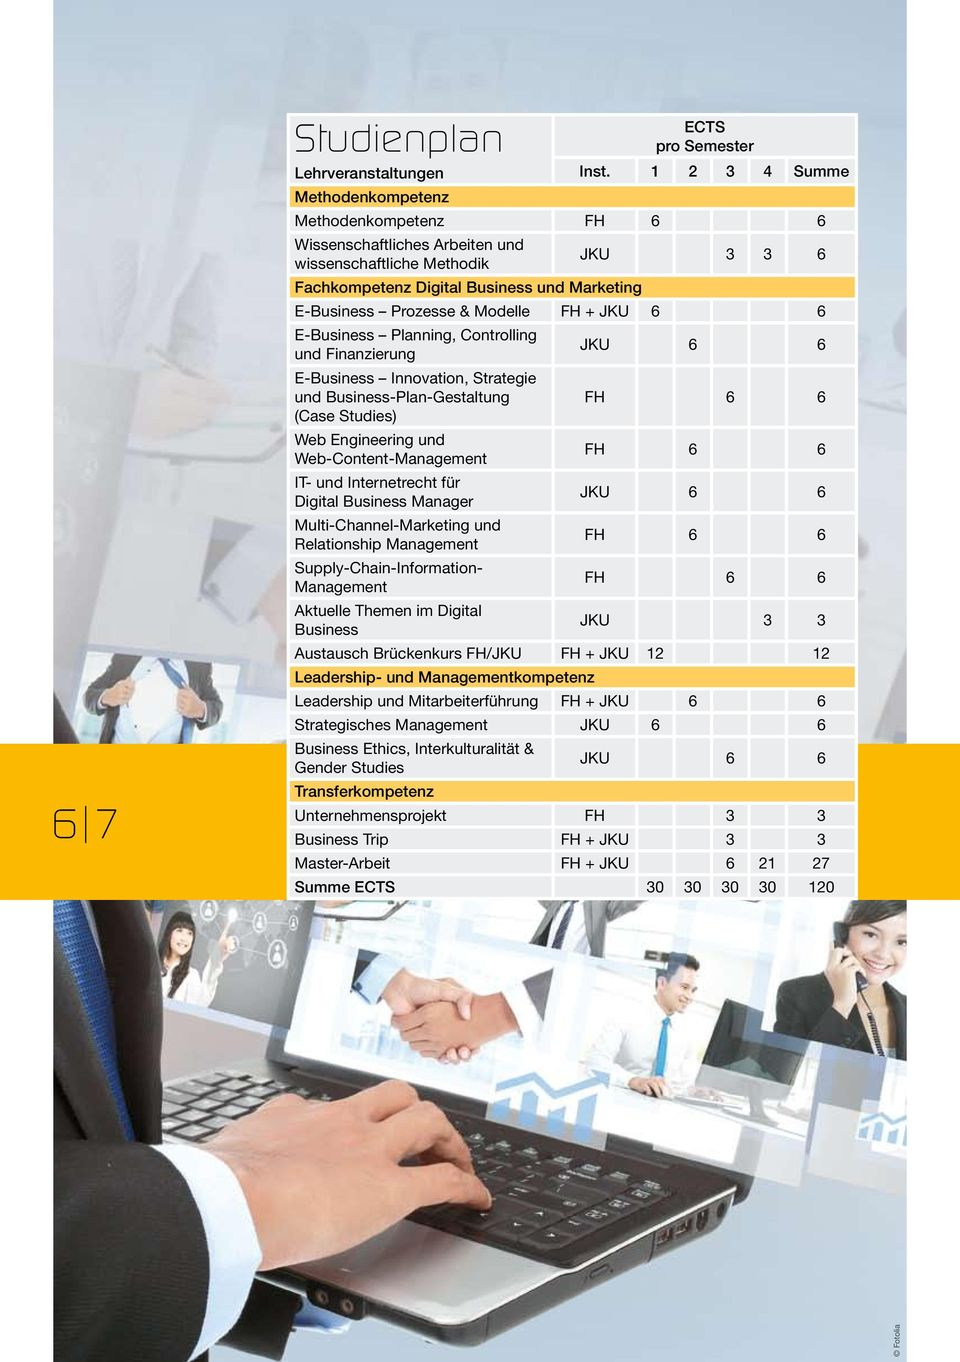 Modelle FH + JKU 6 6 E-Business Planning, Controlling und Finanzierung JKU 6 6 E-Business Innovation, Strategie und Business-Plan-Gestaltung FH 6 6 (Case Studies) Web Engineering und